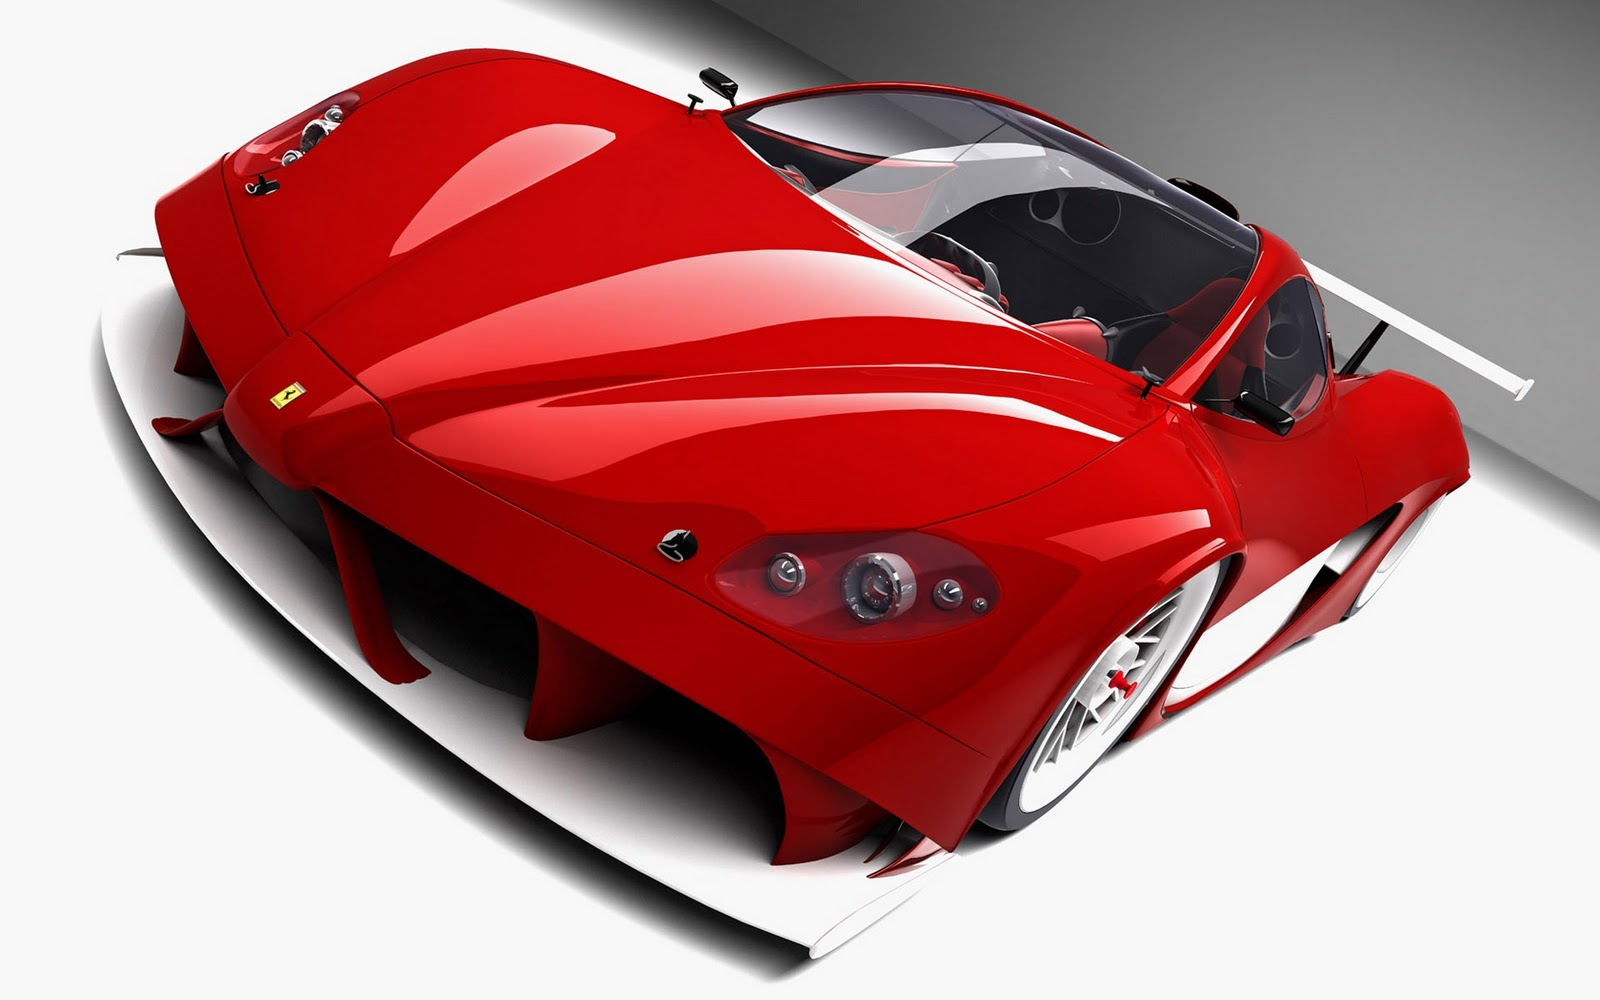 Koenigsegg Red Concept Car Wallpaper HD Car Wallpapers - koenigsegg red concept car wallpapers